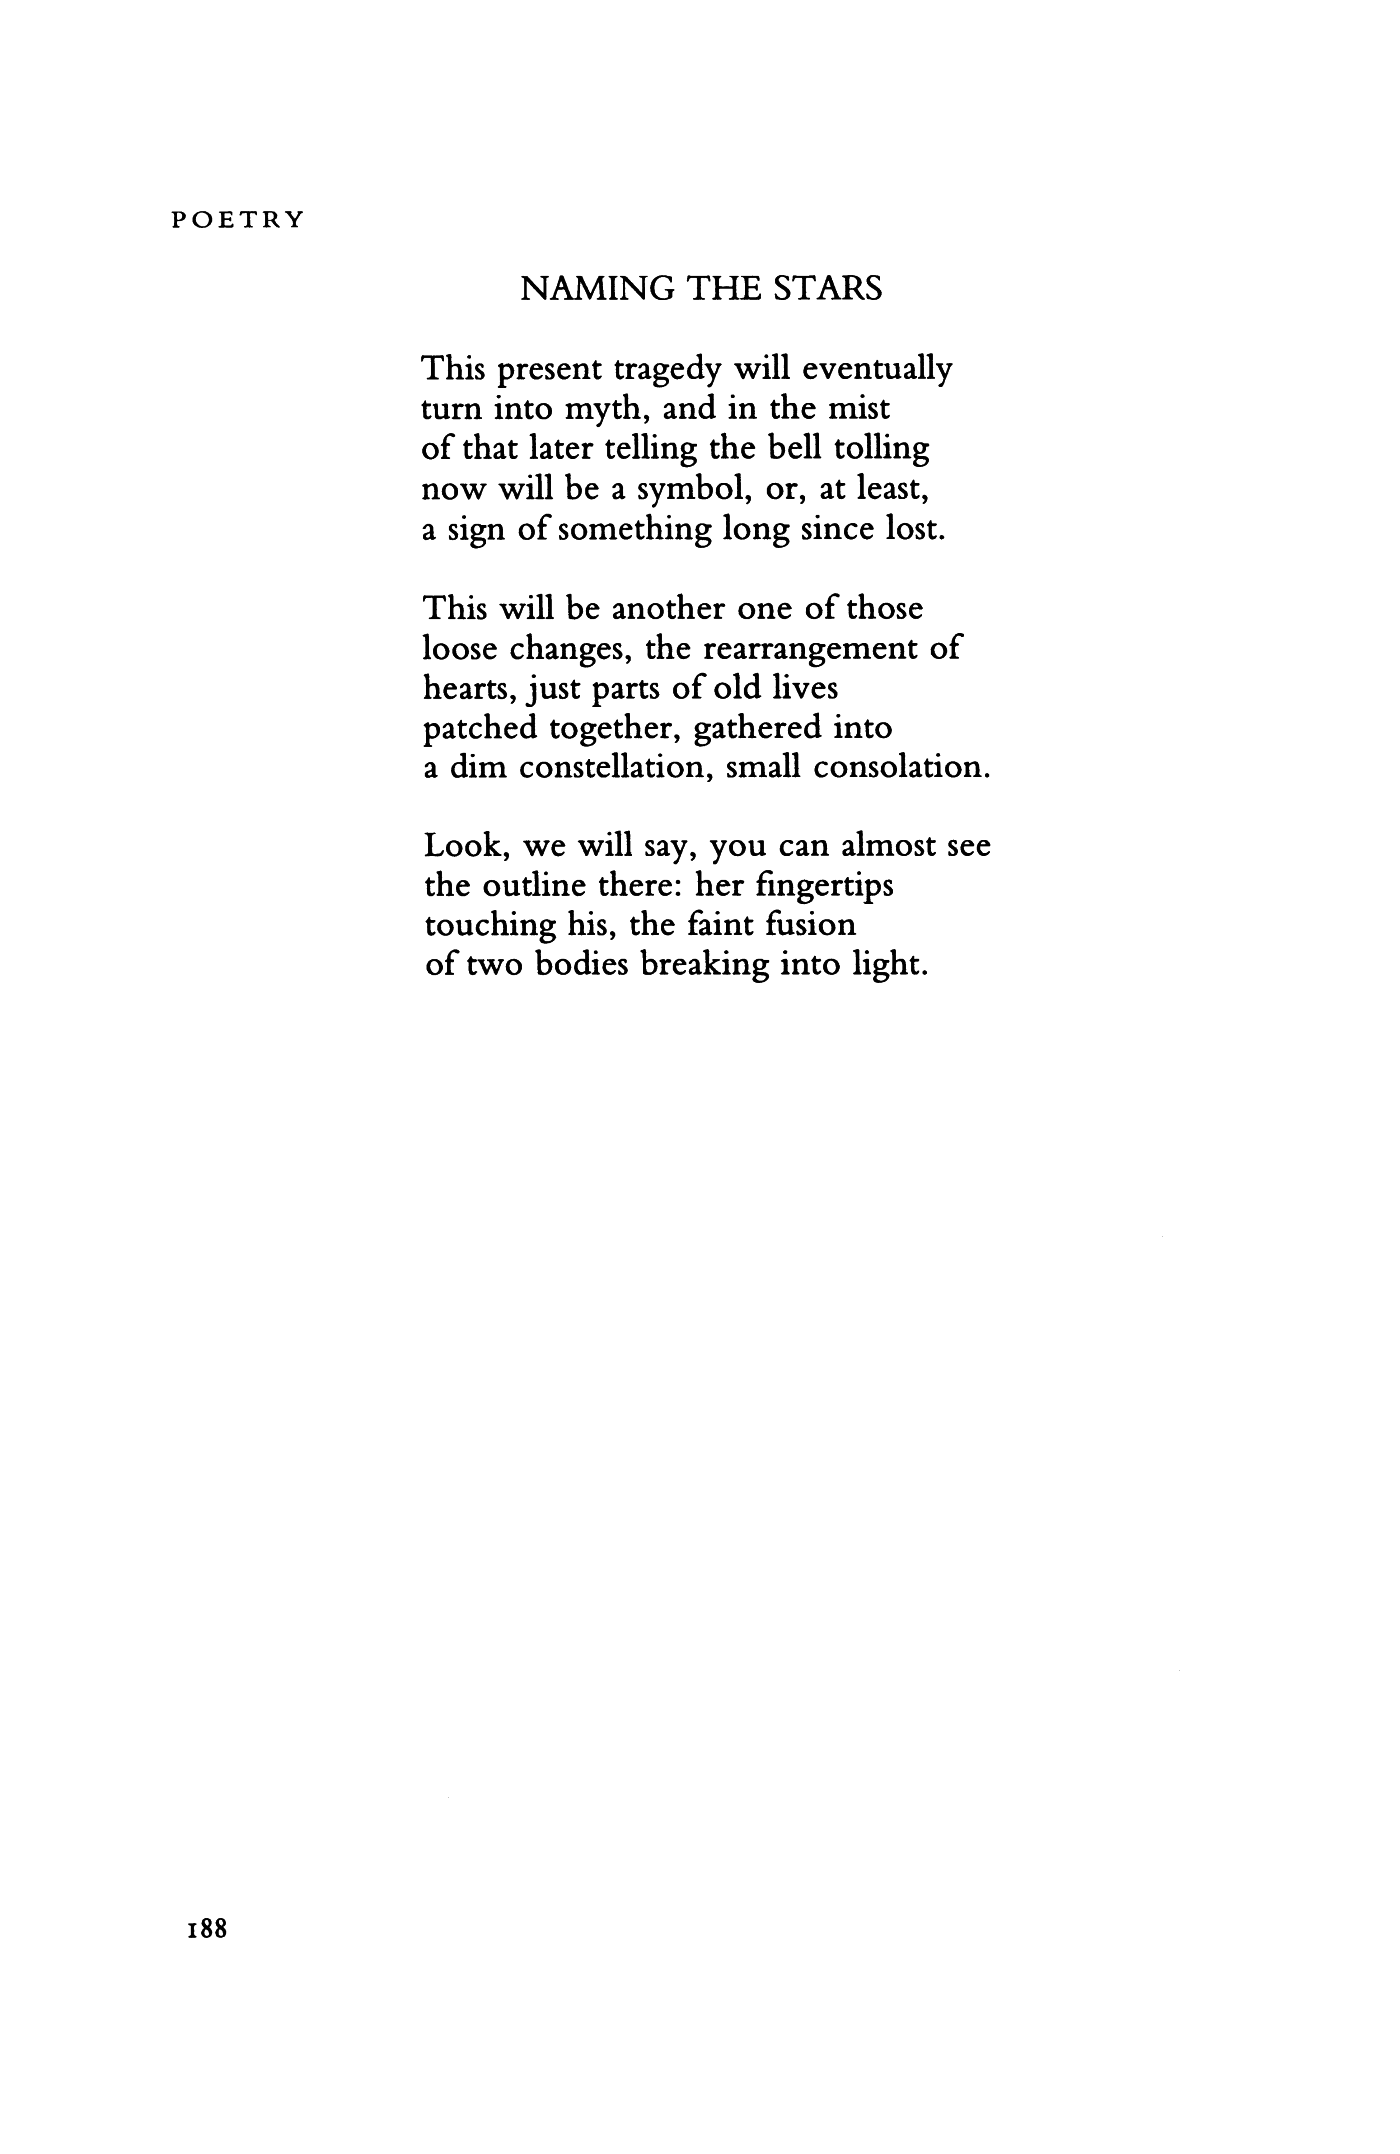 poem about stars